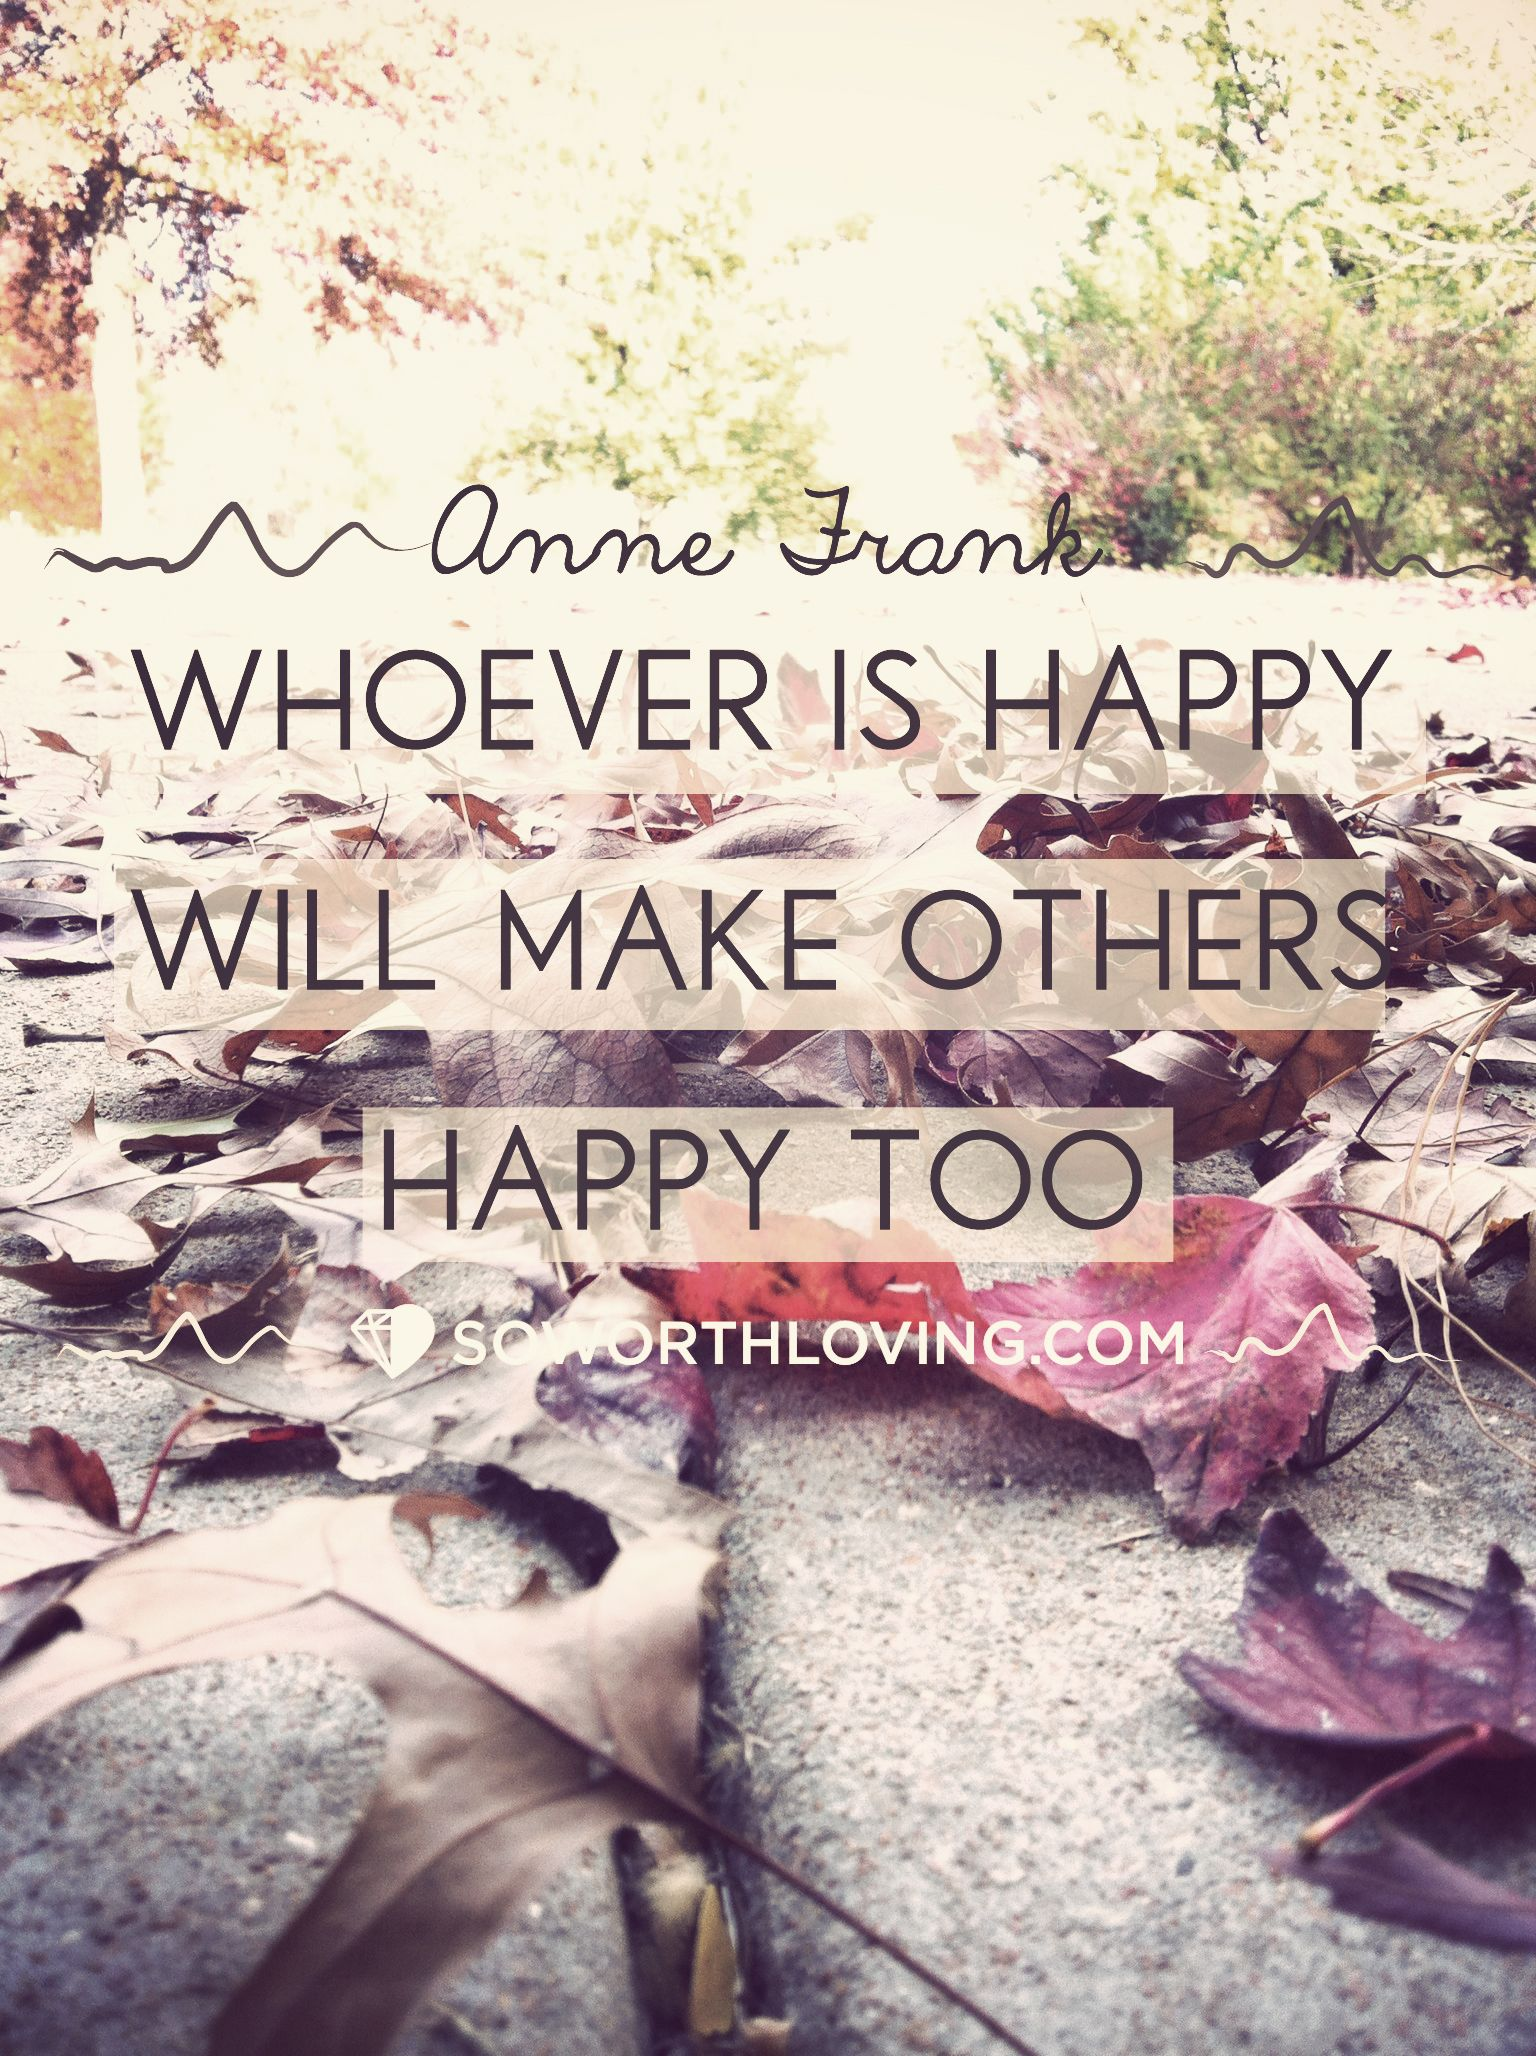 Wisdom Quotes About Life And Happiness Whoever Is Happy Will Make Others Happy Tooswlfamily  Swl Art